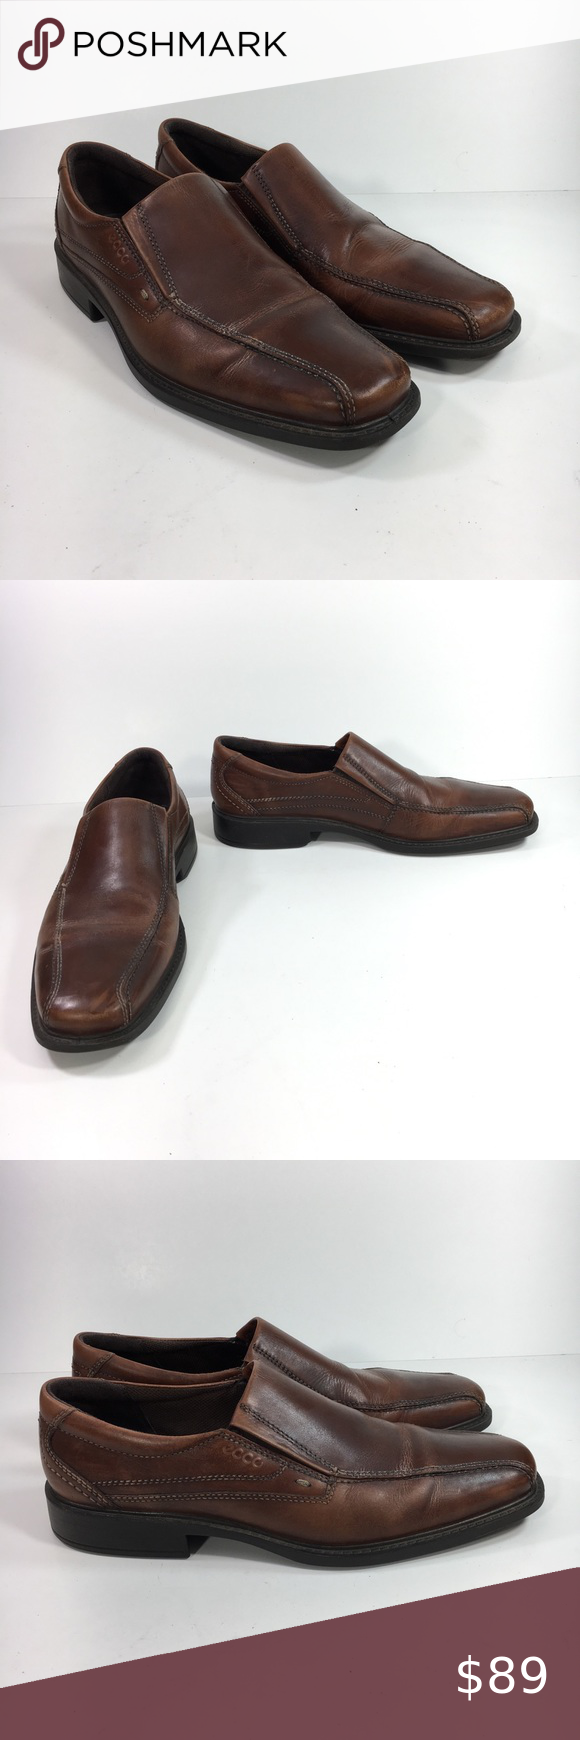 e96a2742b649 Ecco Light Shock Point Men s 45 US 11-11.5 Loafers Ecco Light Shock Point  Men s 45 US 11 - 11.5 Brown Leather Slip On Loafer Shoes Preowned in good  ...